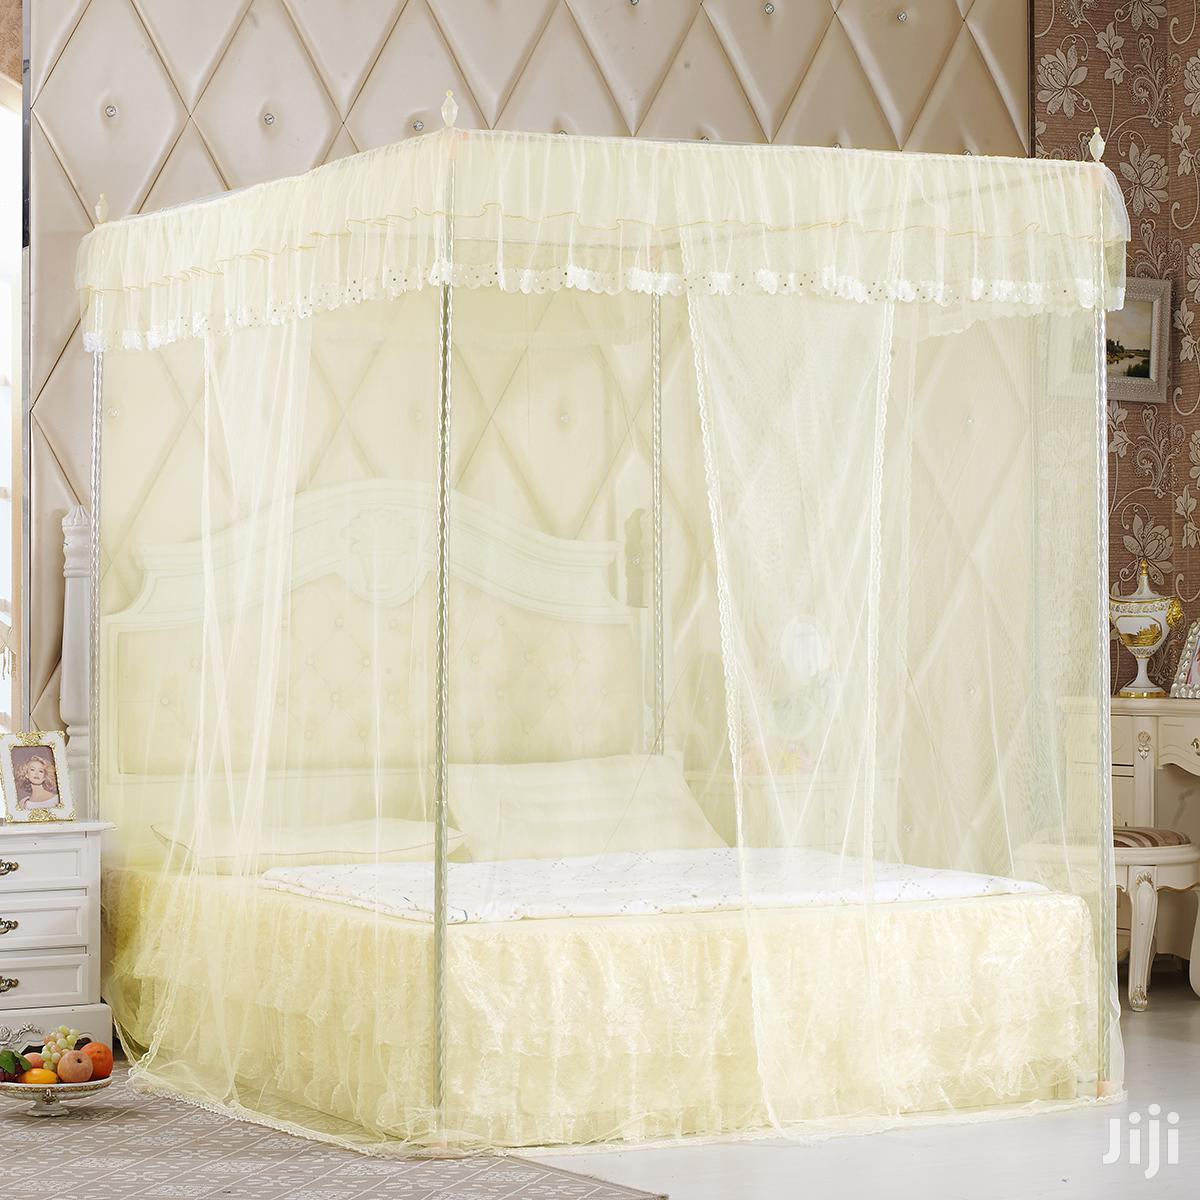 Four Corner Post Bed Canopy Mosquito Net - Single, Double, King Size | Home Accessories for sale in Nairobi Central, Nairobi, Kenya